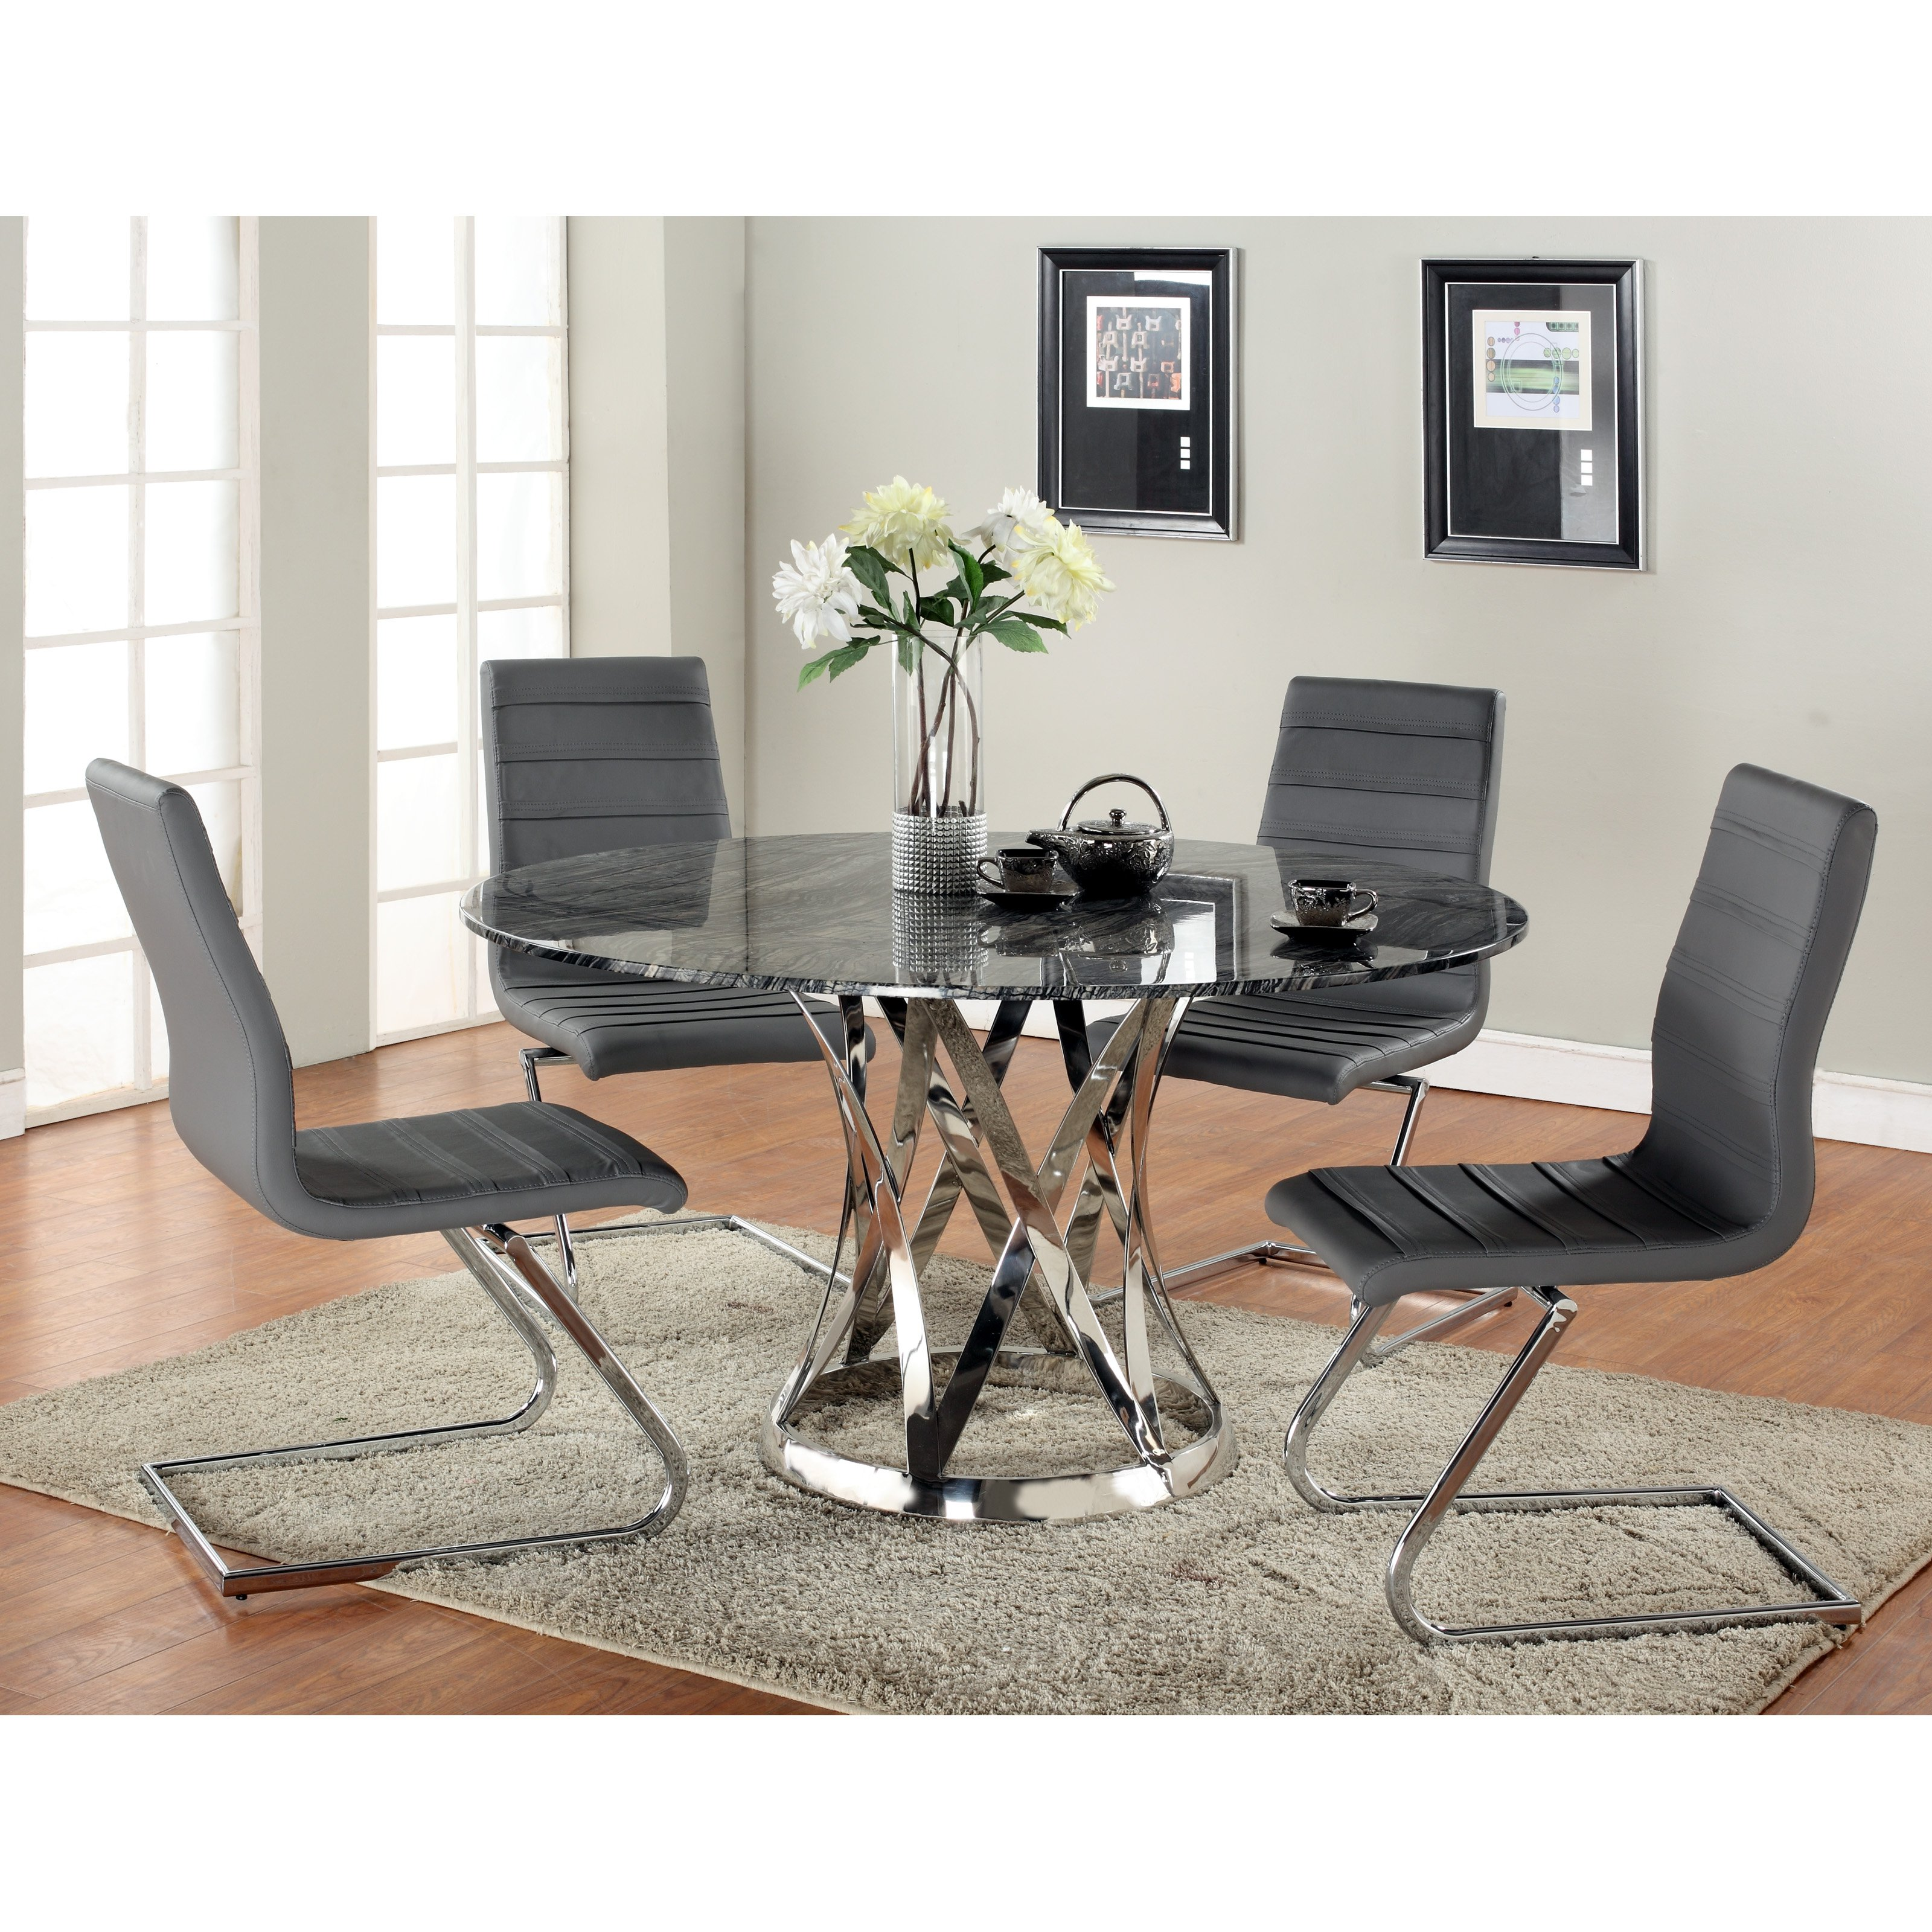 Chintaly Janet 5 Piece Dining Table Set with Marble Top